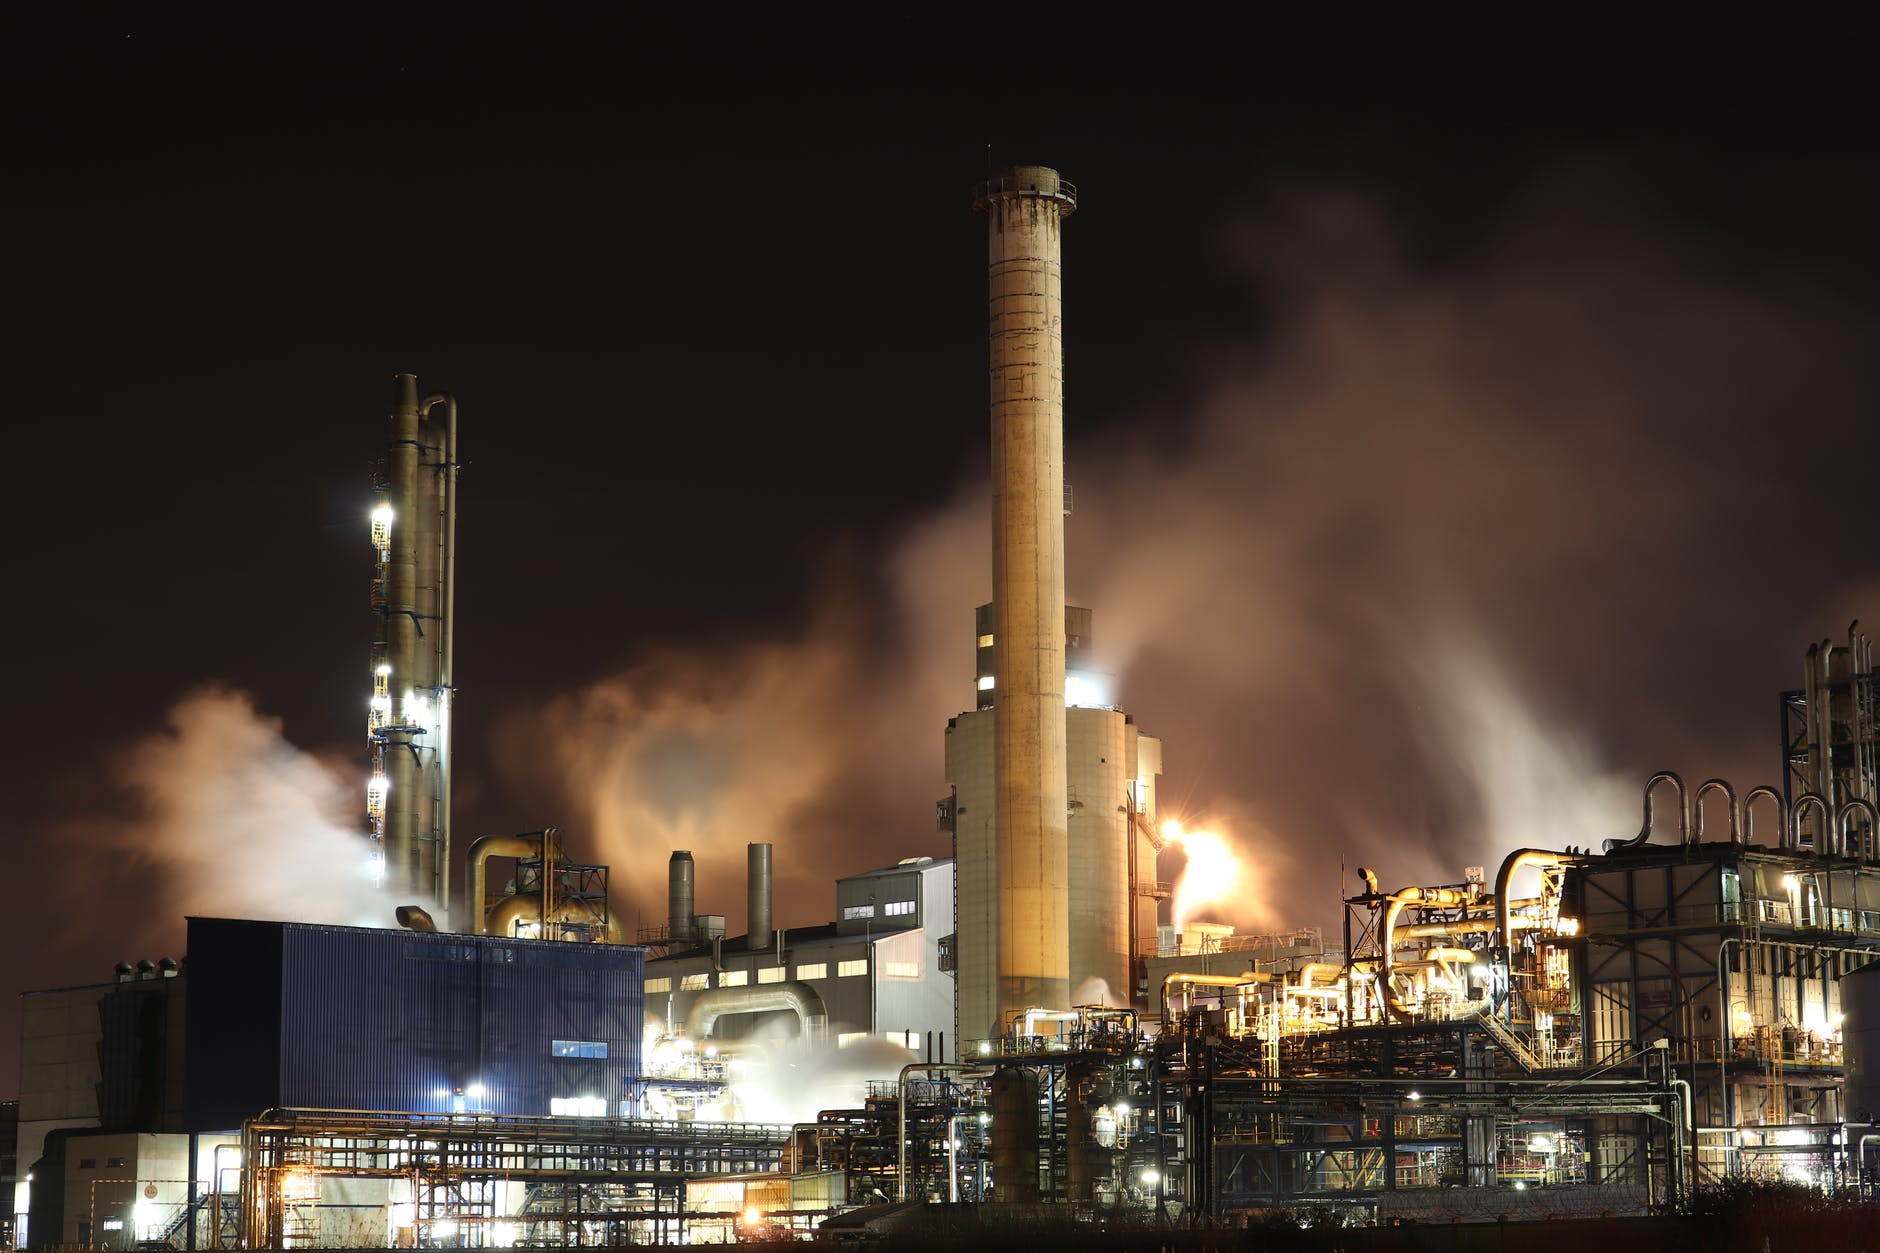 brown and white factory building during night time